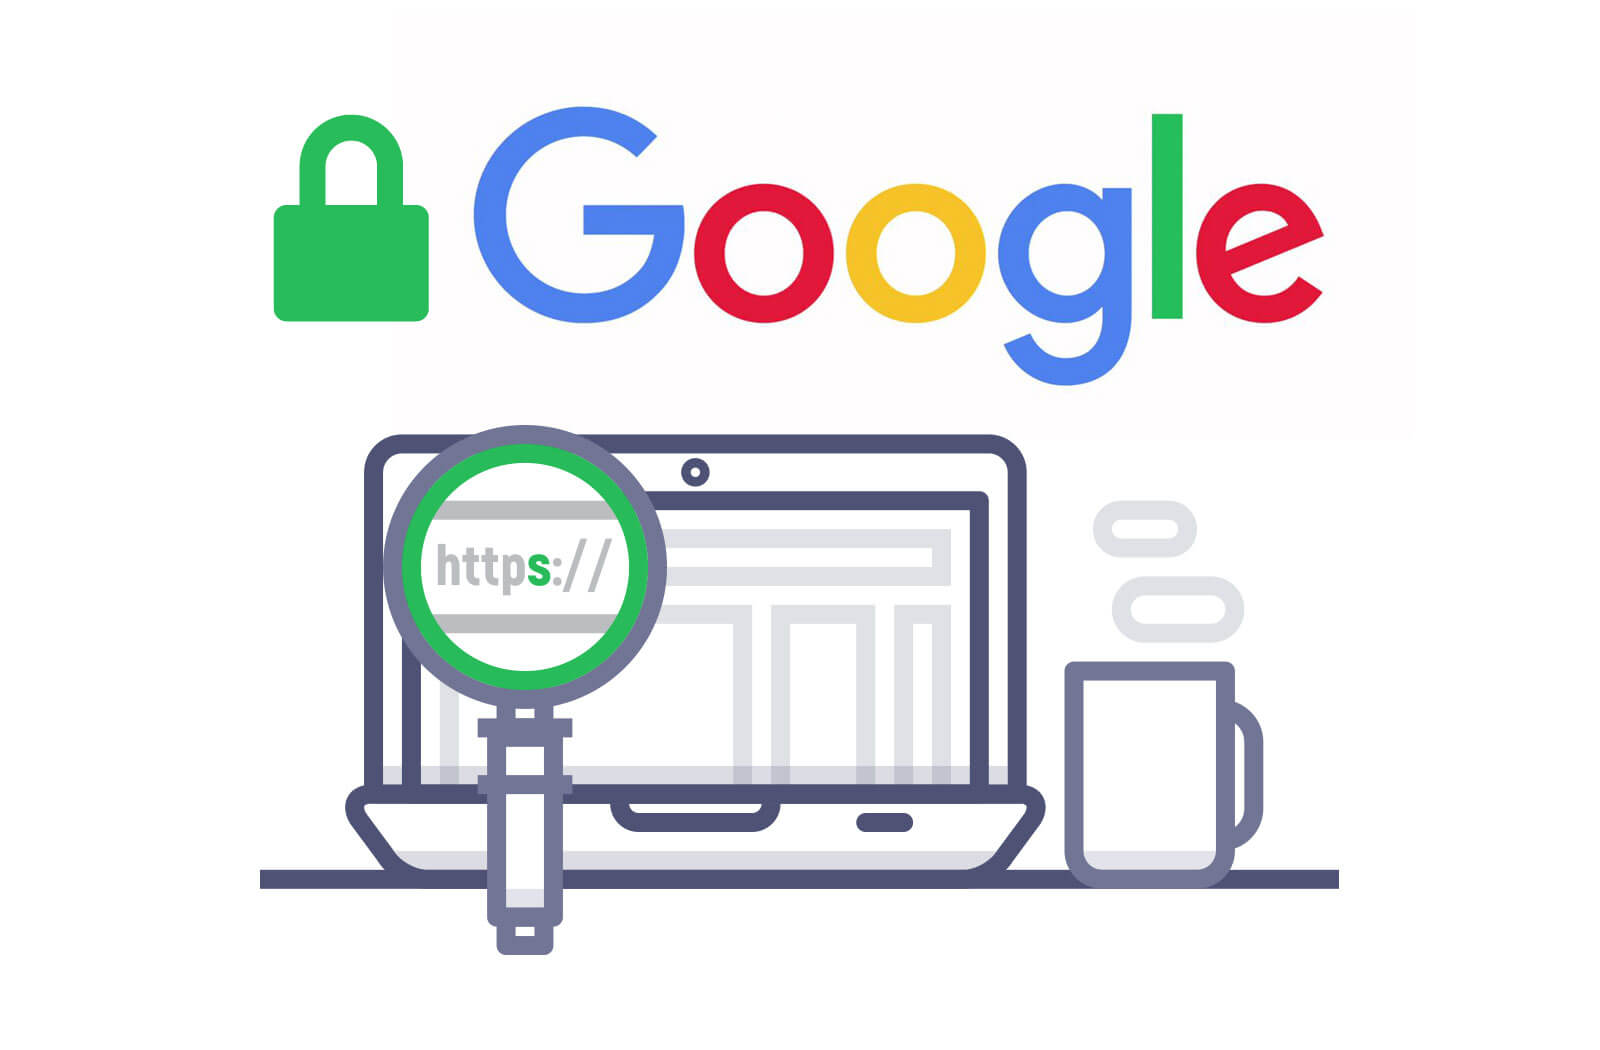 Google Requiring HTTPS Starting July 2018